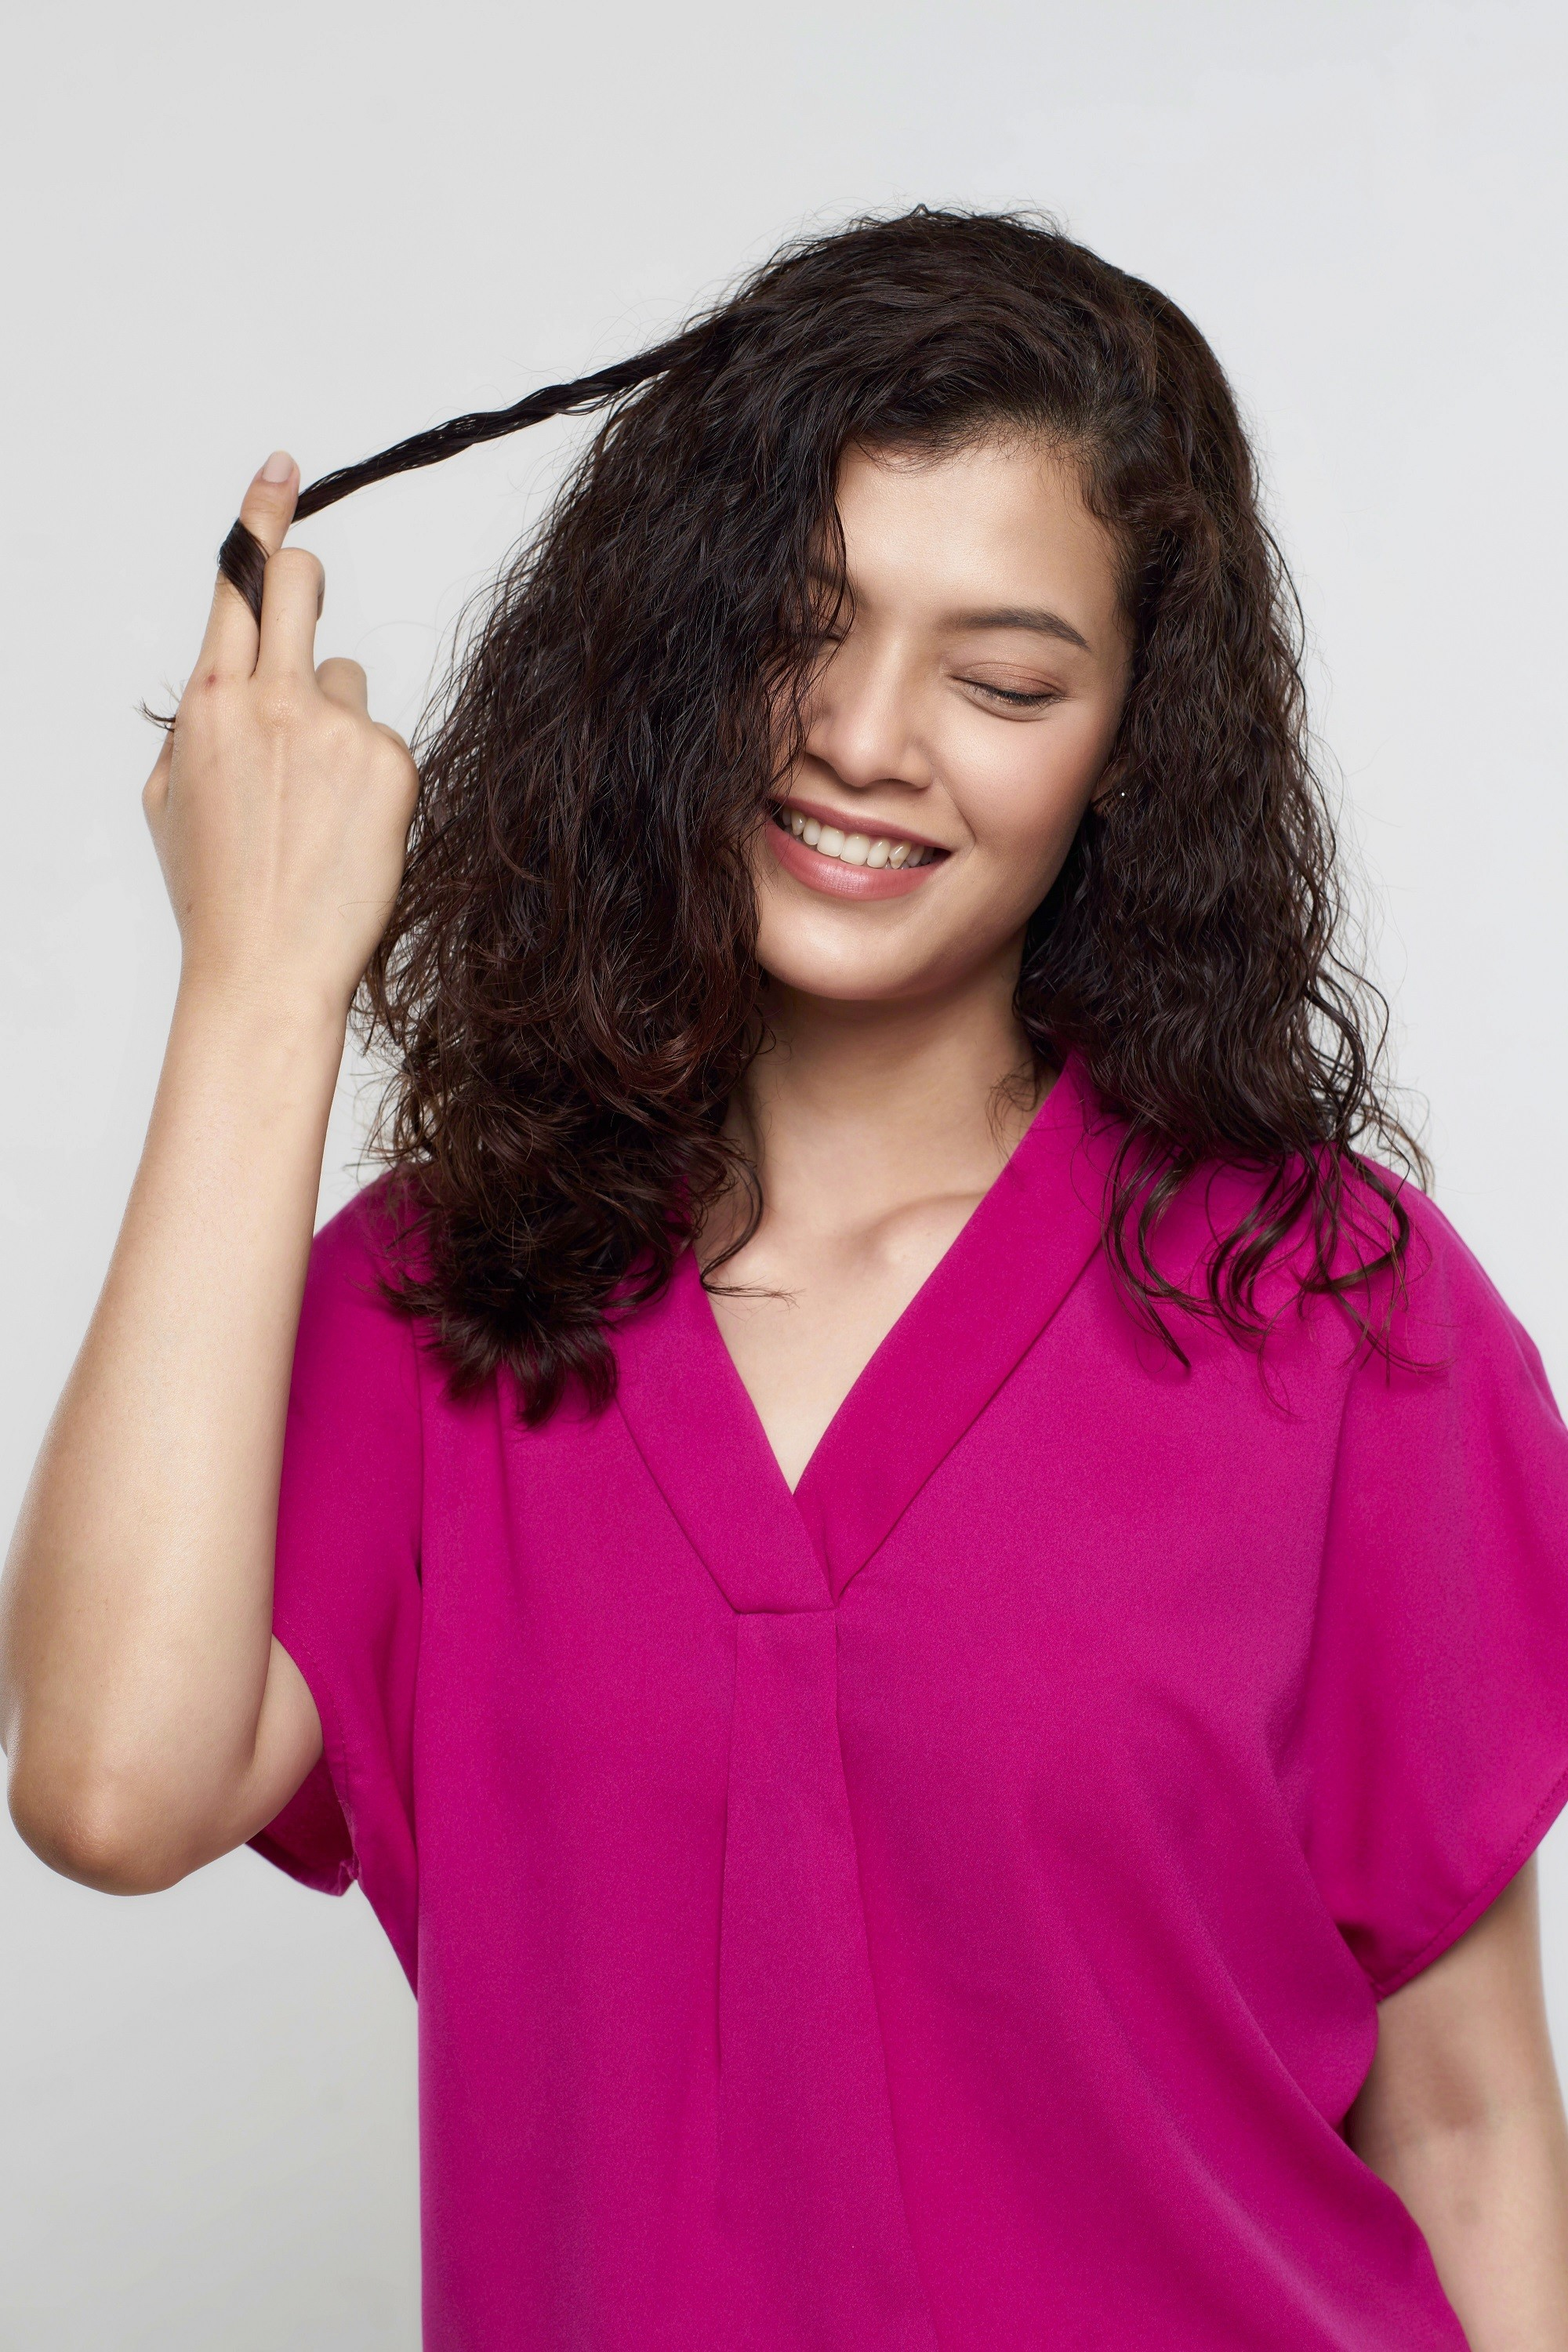 How to brush curly hair: Asian woman twirling a section of her dark curly hair